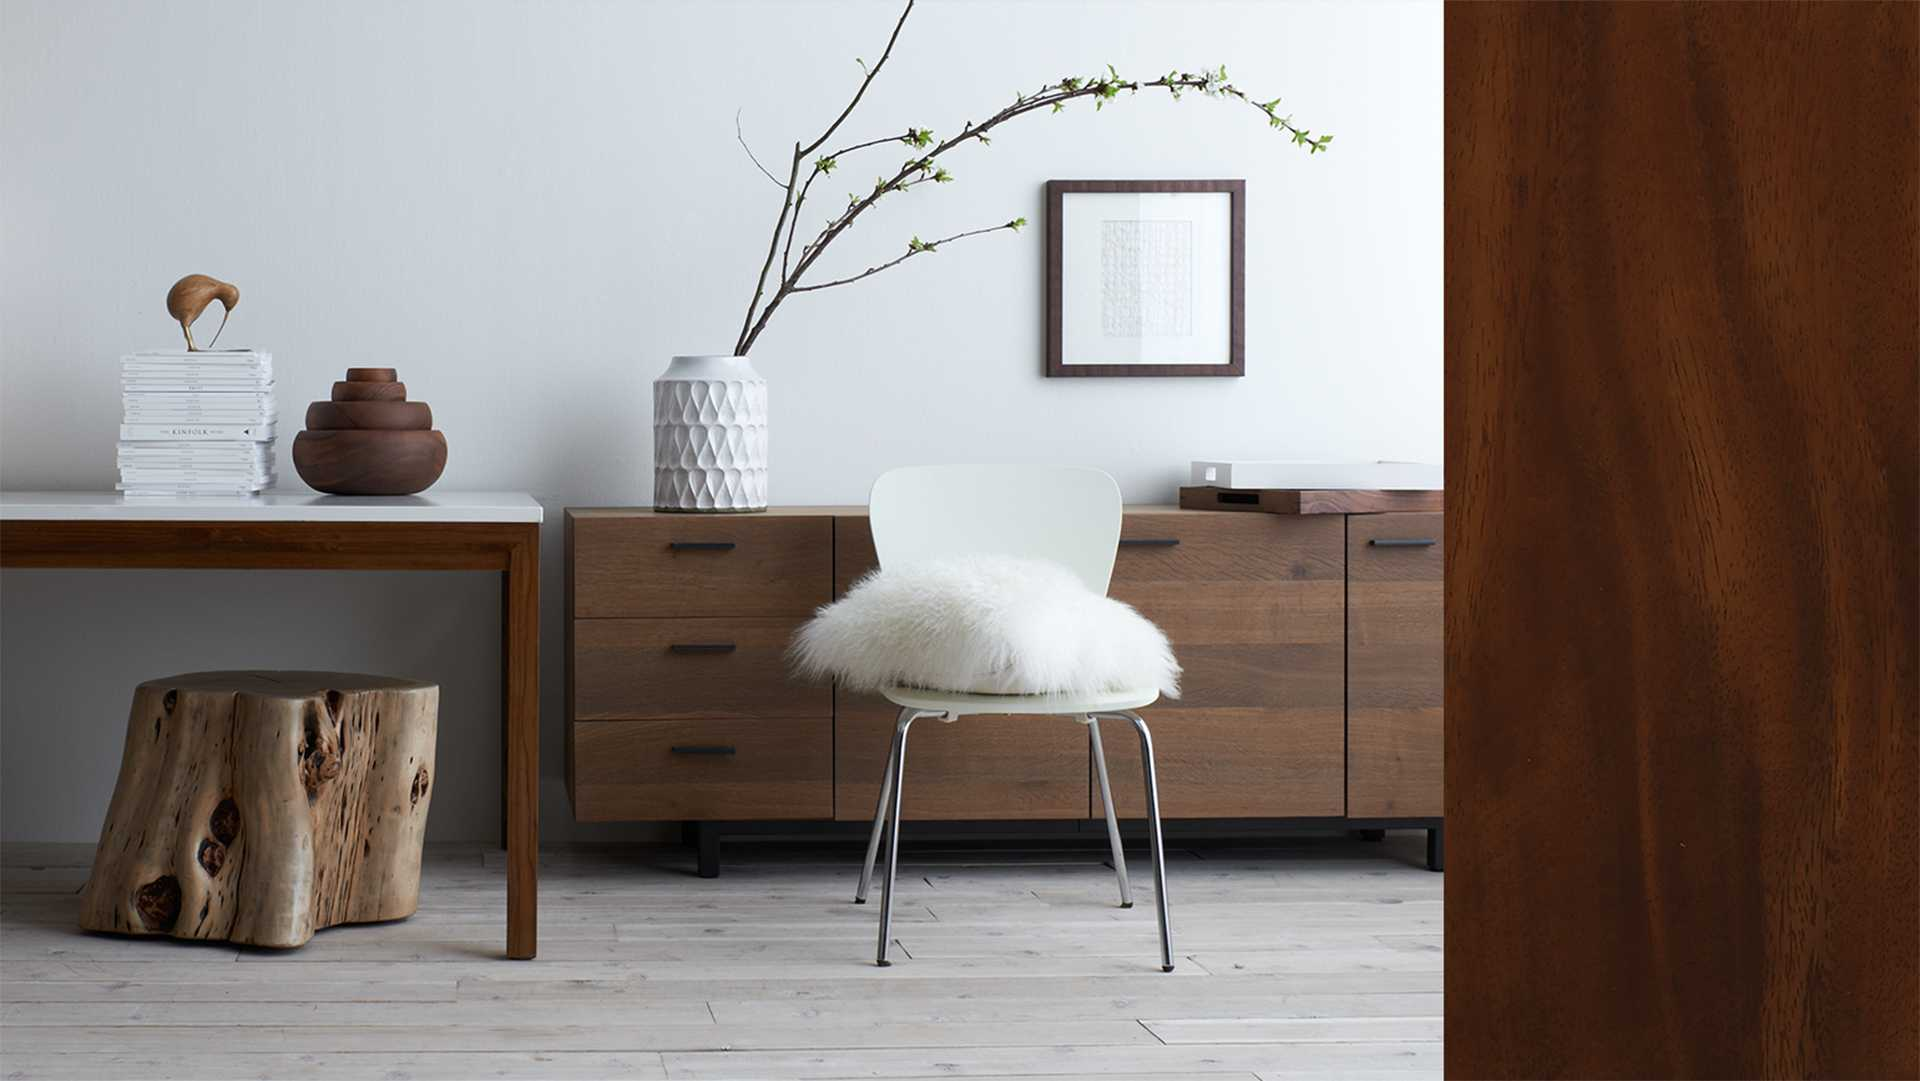 Vignette of white and wood products